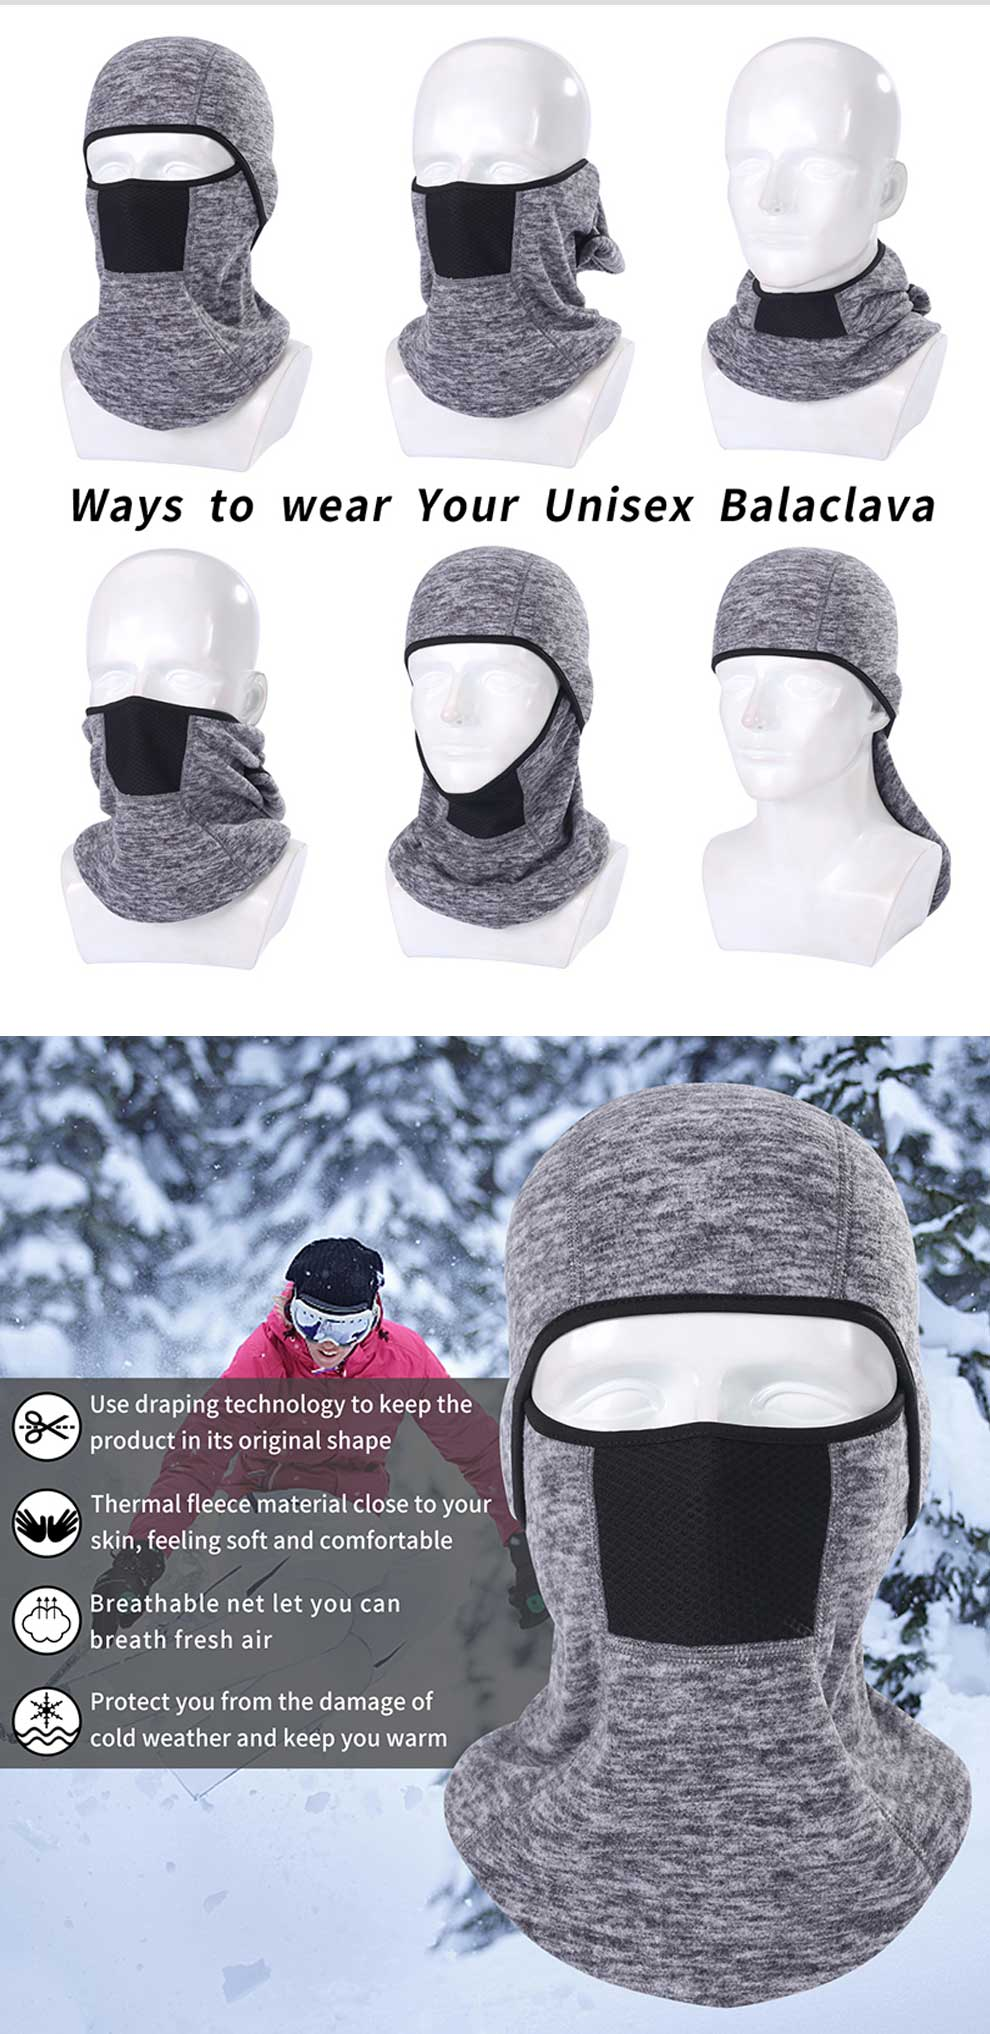 US $11 08 |SUNMECI Motorcycle Face Mask Shawl Autumn Winter Thermal Fleece  Face Shield Mask Moto Balaclava Windproof Cycling Ski Scarf-in Men's